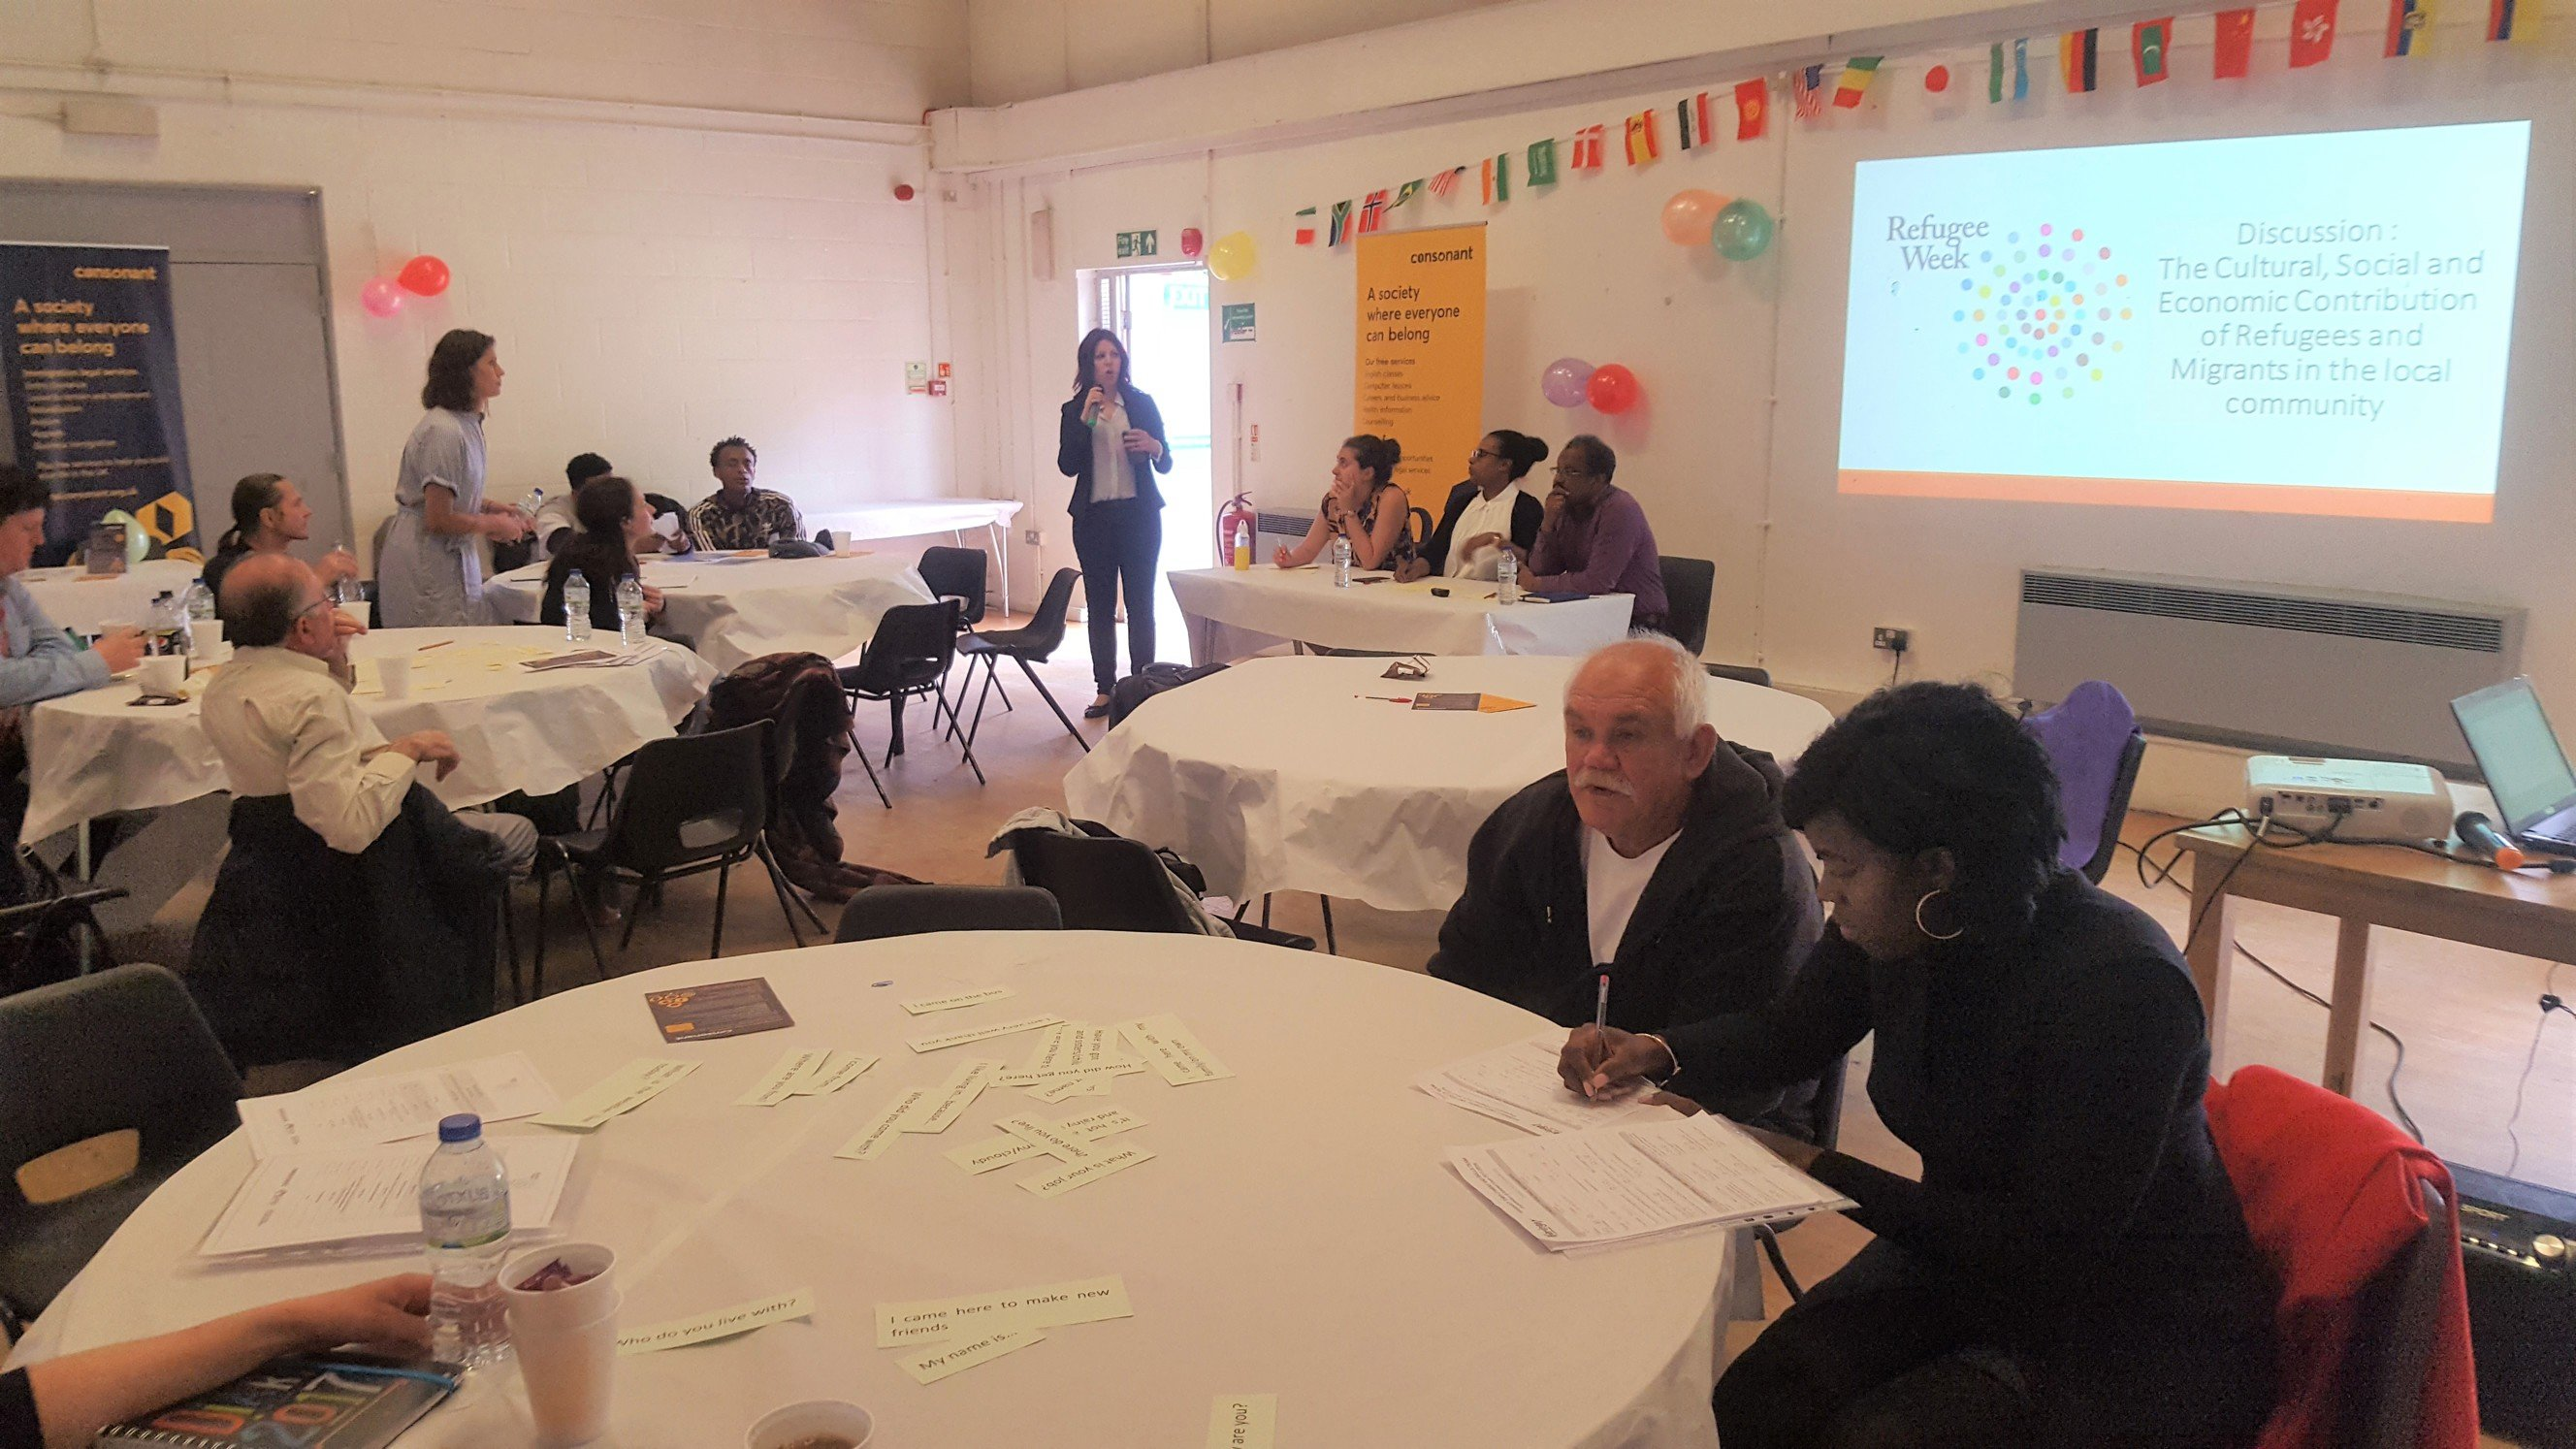 Connected Communities project Refugee Week event 2019